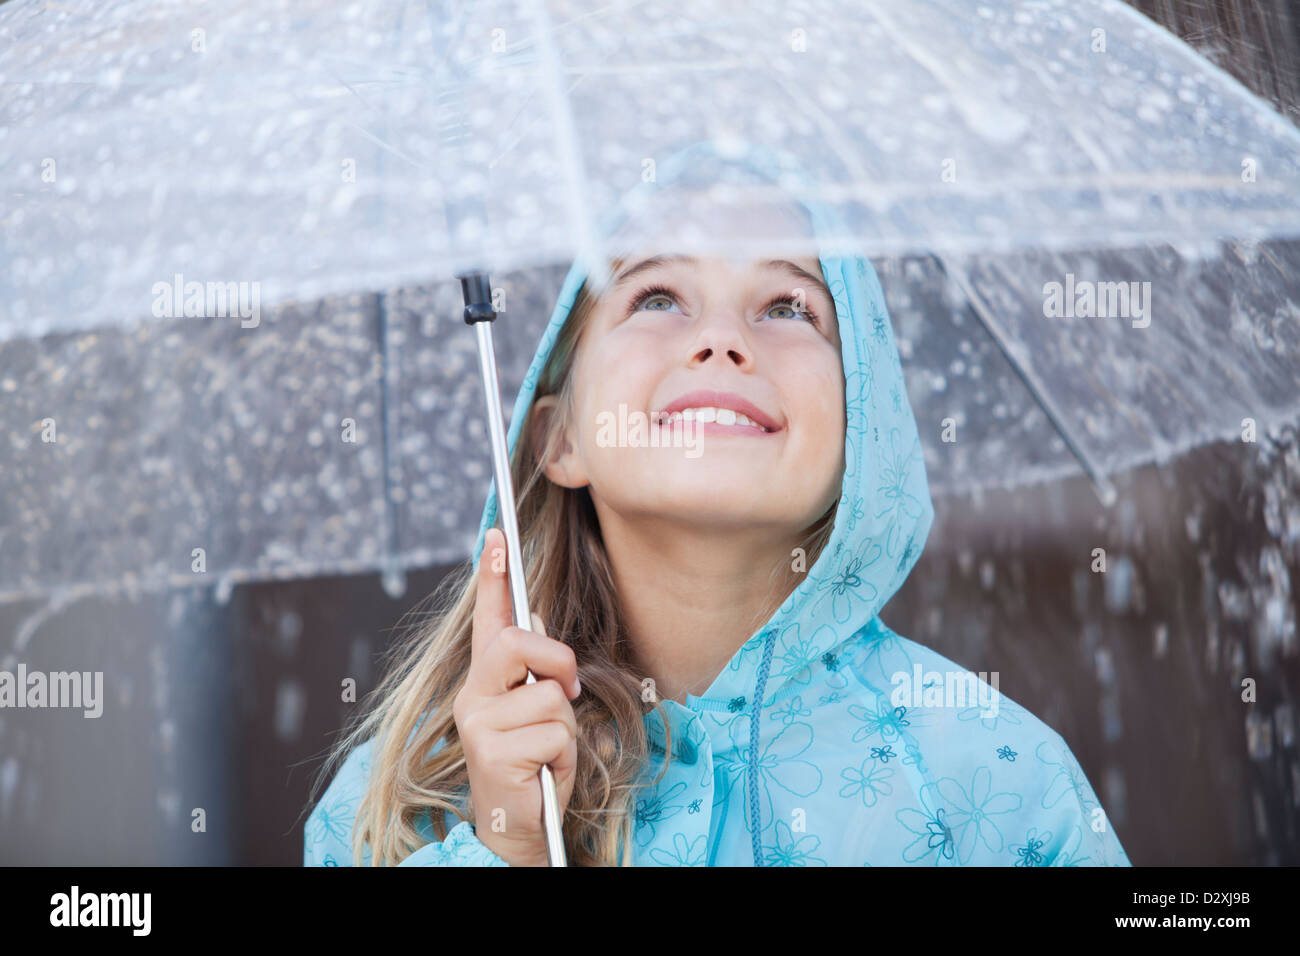 Close up of smiling girl under umbrella in downpour - Stock Image